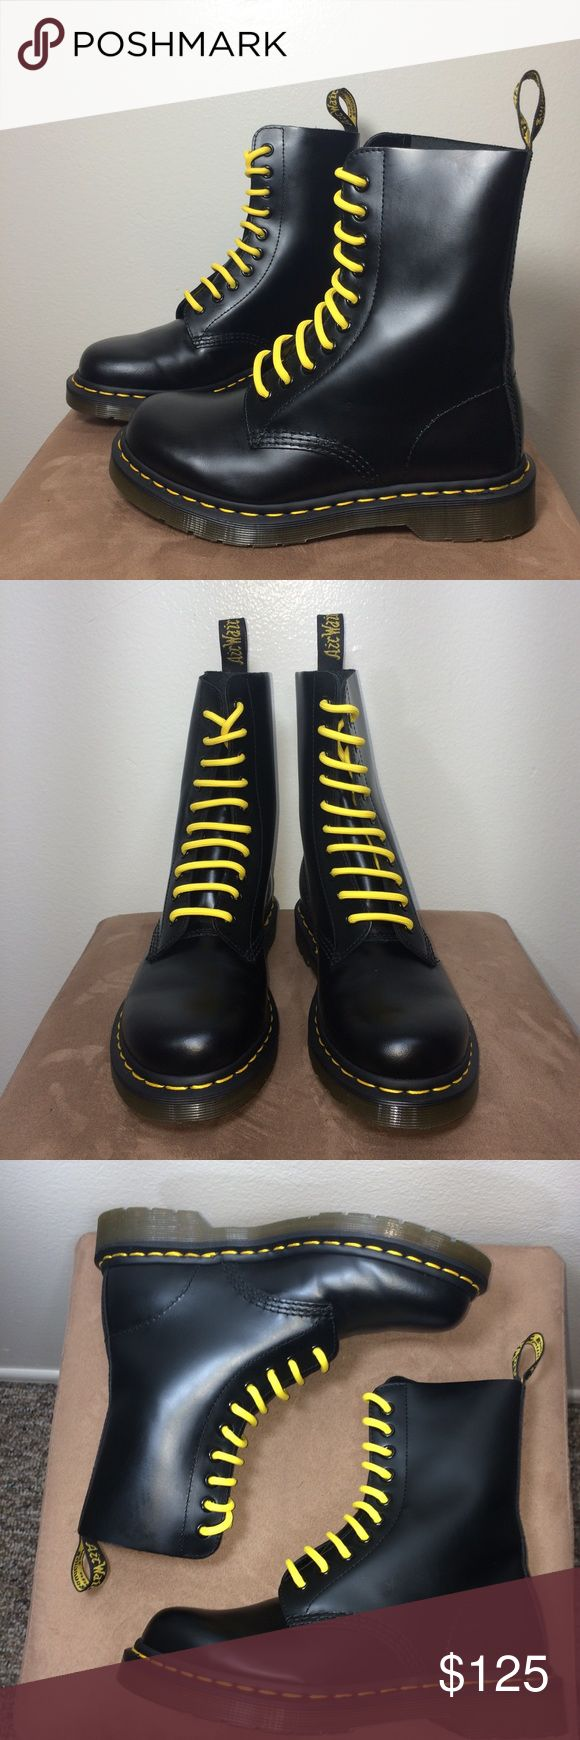 """Dr. Martens 1490 10 Eye Black Smooth Leather Boots Dr. Martens 1490 10 Eye Black Smooth Leather Boots. UK 4. US Women's 6. Very light creasing. Light wear on heels. Like-new. Includes yellow & black laces. Removable insoles. Classic essential boots!   Insole - 9.25""""  *I'm not responsible for the fit of an item*   I don't discuss prices through comments, please use the offer button!  ⚡️ I ship everyday Monday - Friday  All packages handled with care  Bundle 2+ items for a discount  I don't…"""